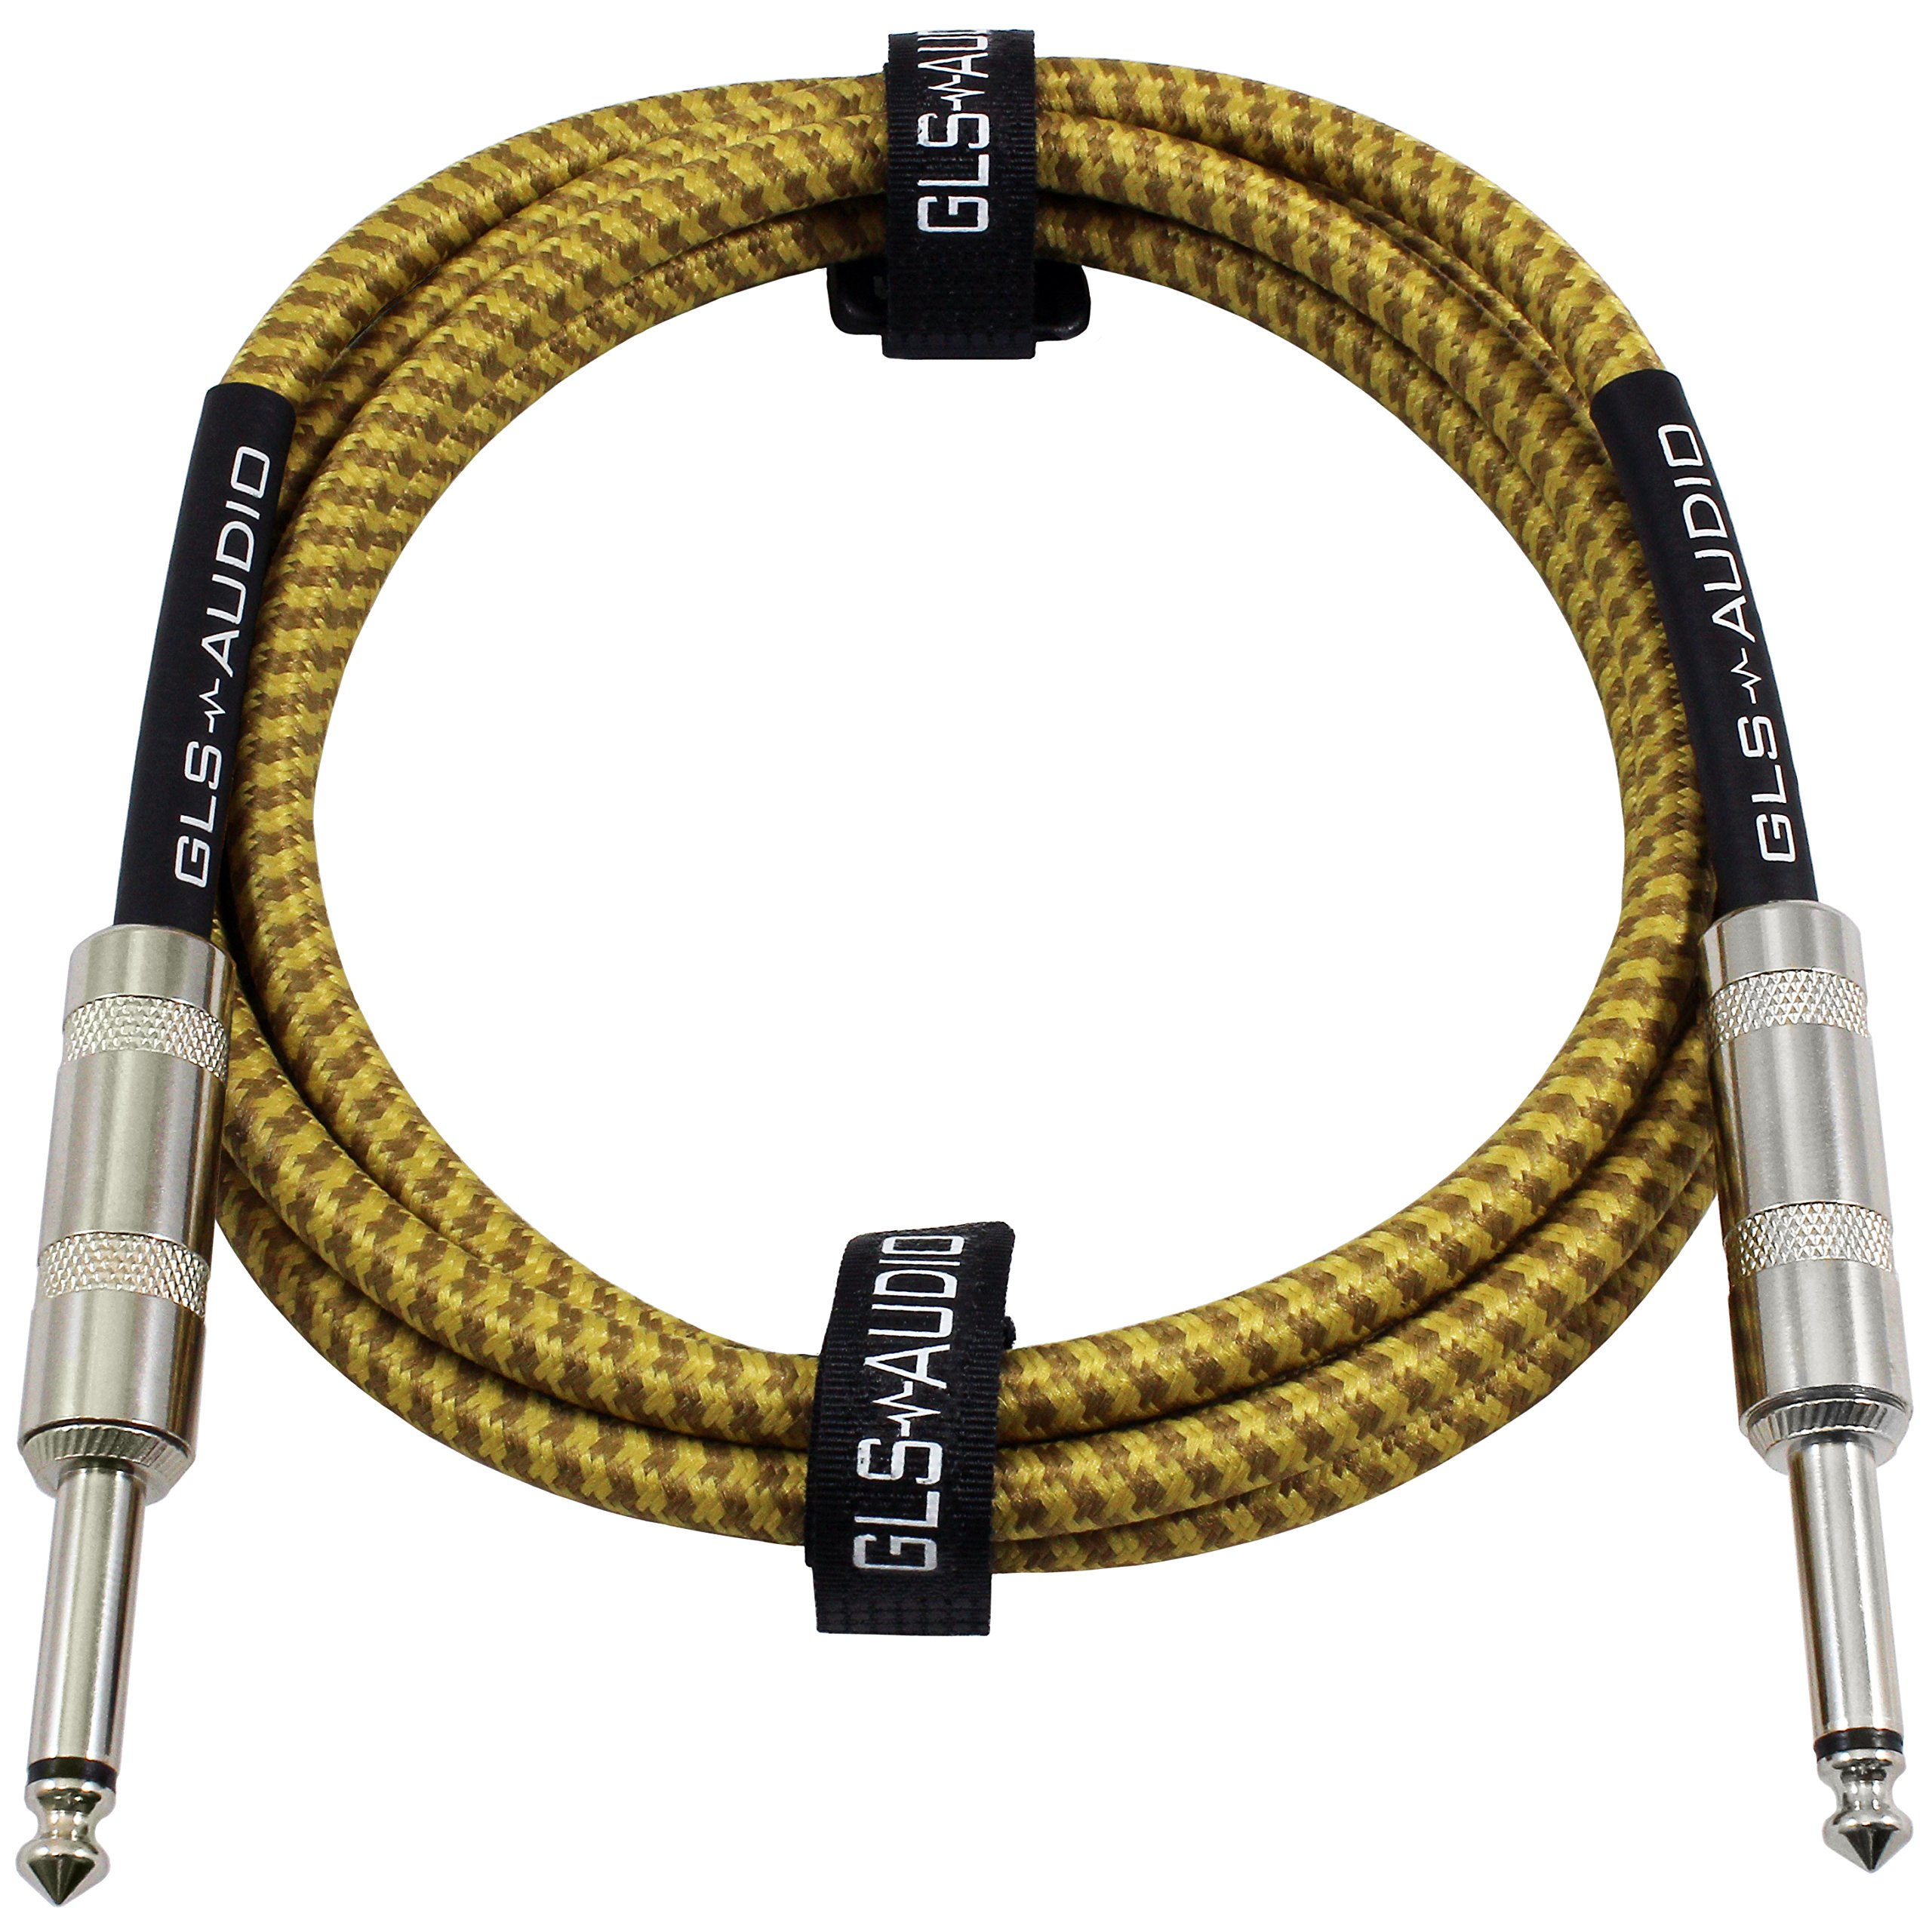 GLS Audio 6 Foot Guitar Instrument Cable - 1/4 Inch TS to 1/4 Inch TS 6-FT Brown Yellow Tweed Cloth Jacket - 6 Feet Pro Cord 6' Phono 6.3mm - SINGLE by GLS Audio